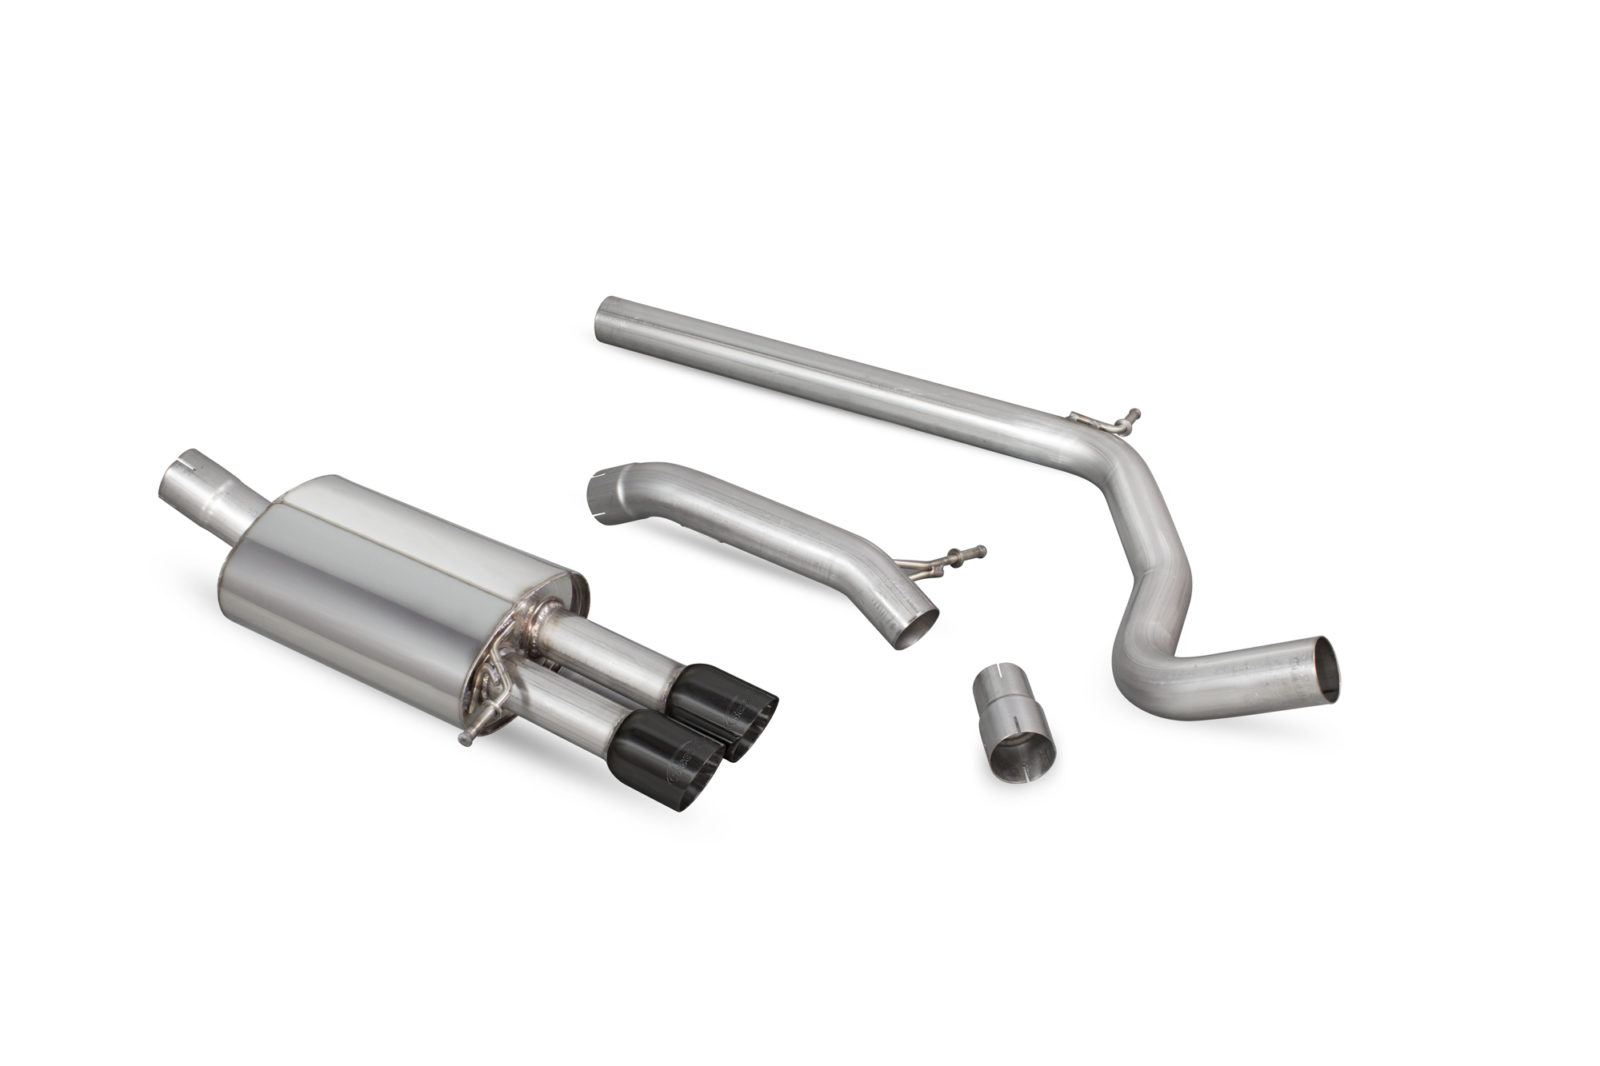 Scorpion Volkswagen Polo Gti 1 8t 9n3 Non Resonated Cat Back System